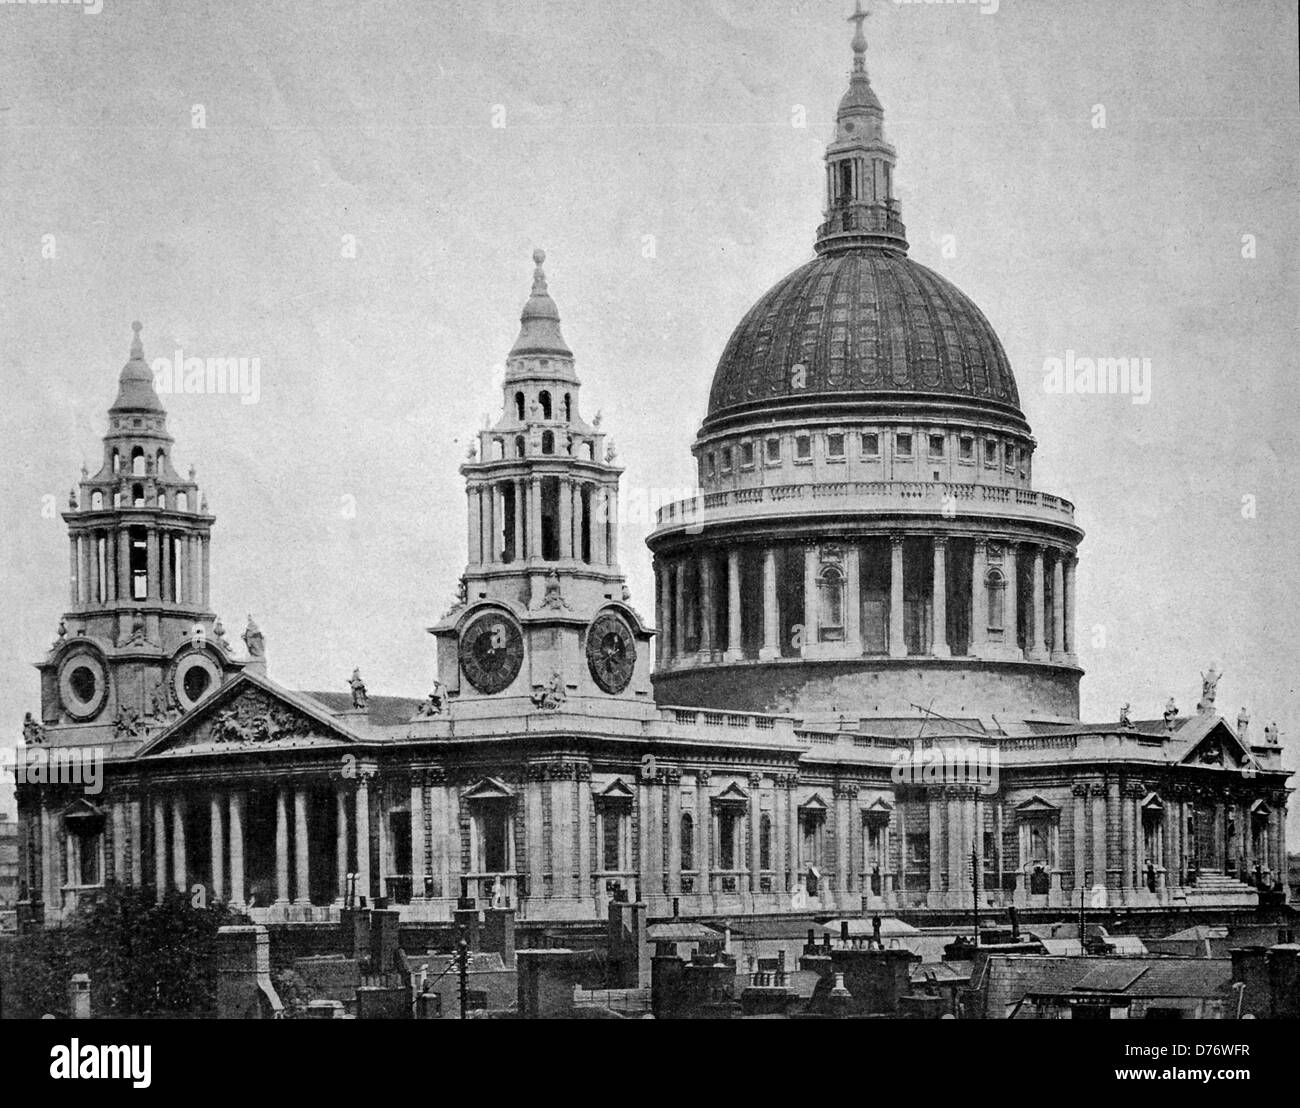 Early autotype of St. Paul's Cathedral, London, England, United Kingdom, 1880 - Stock Image